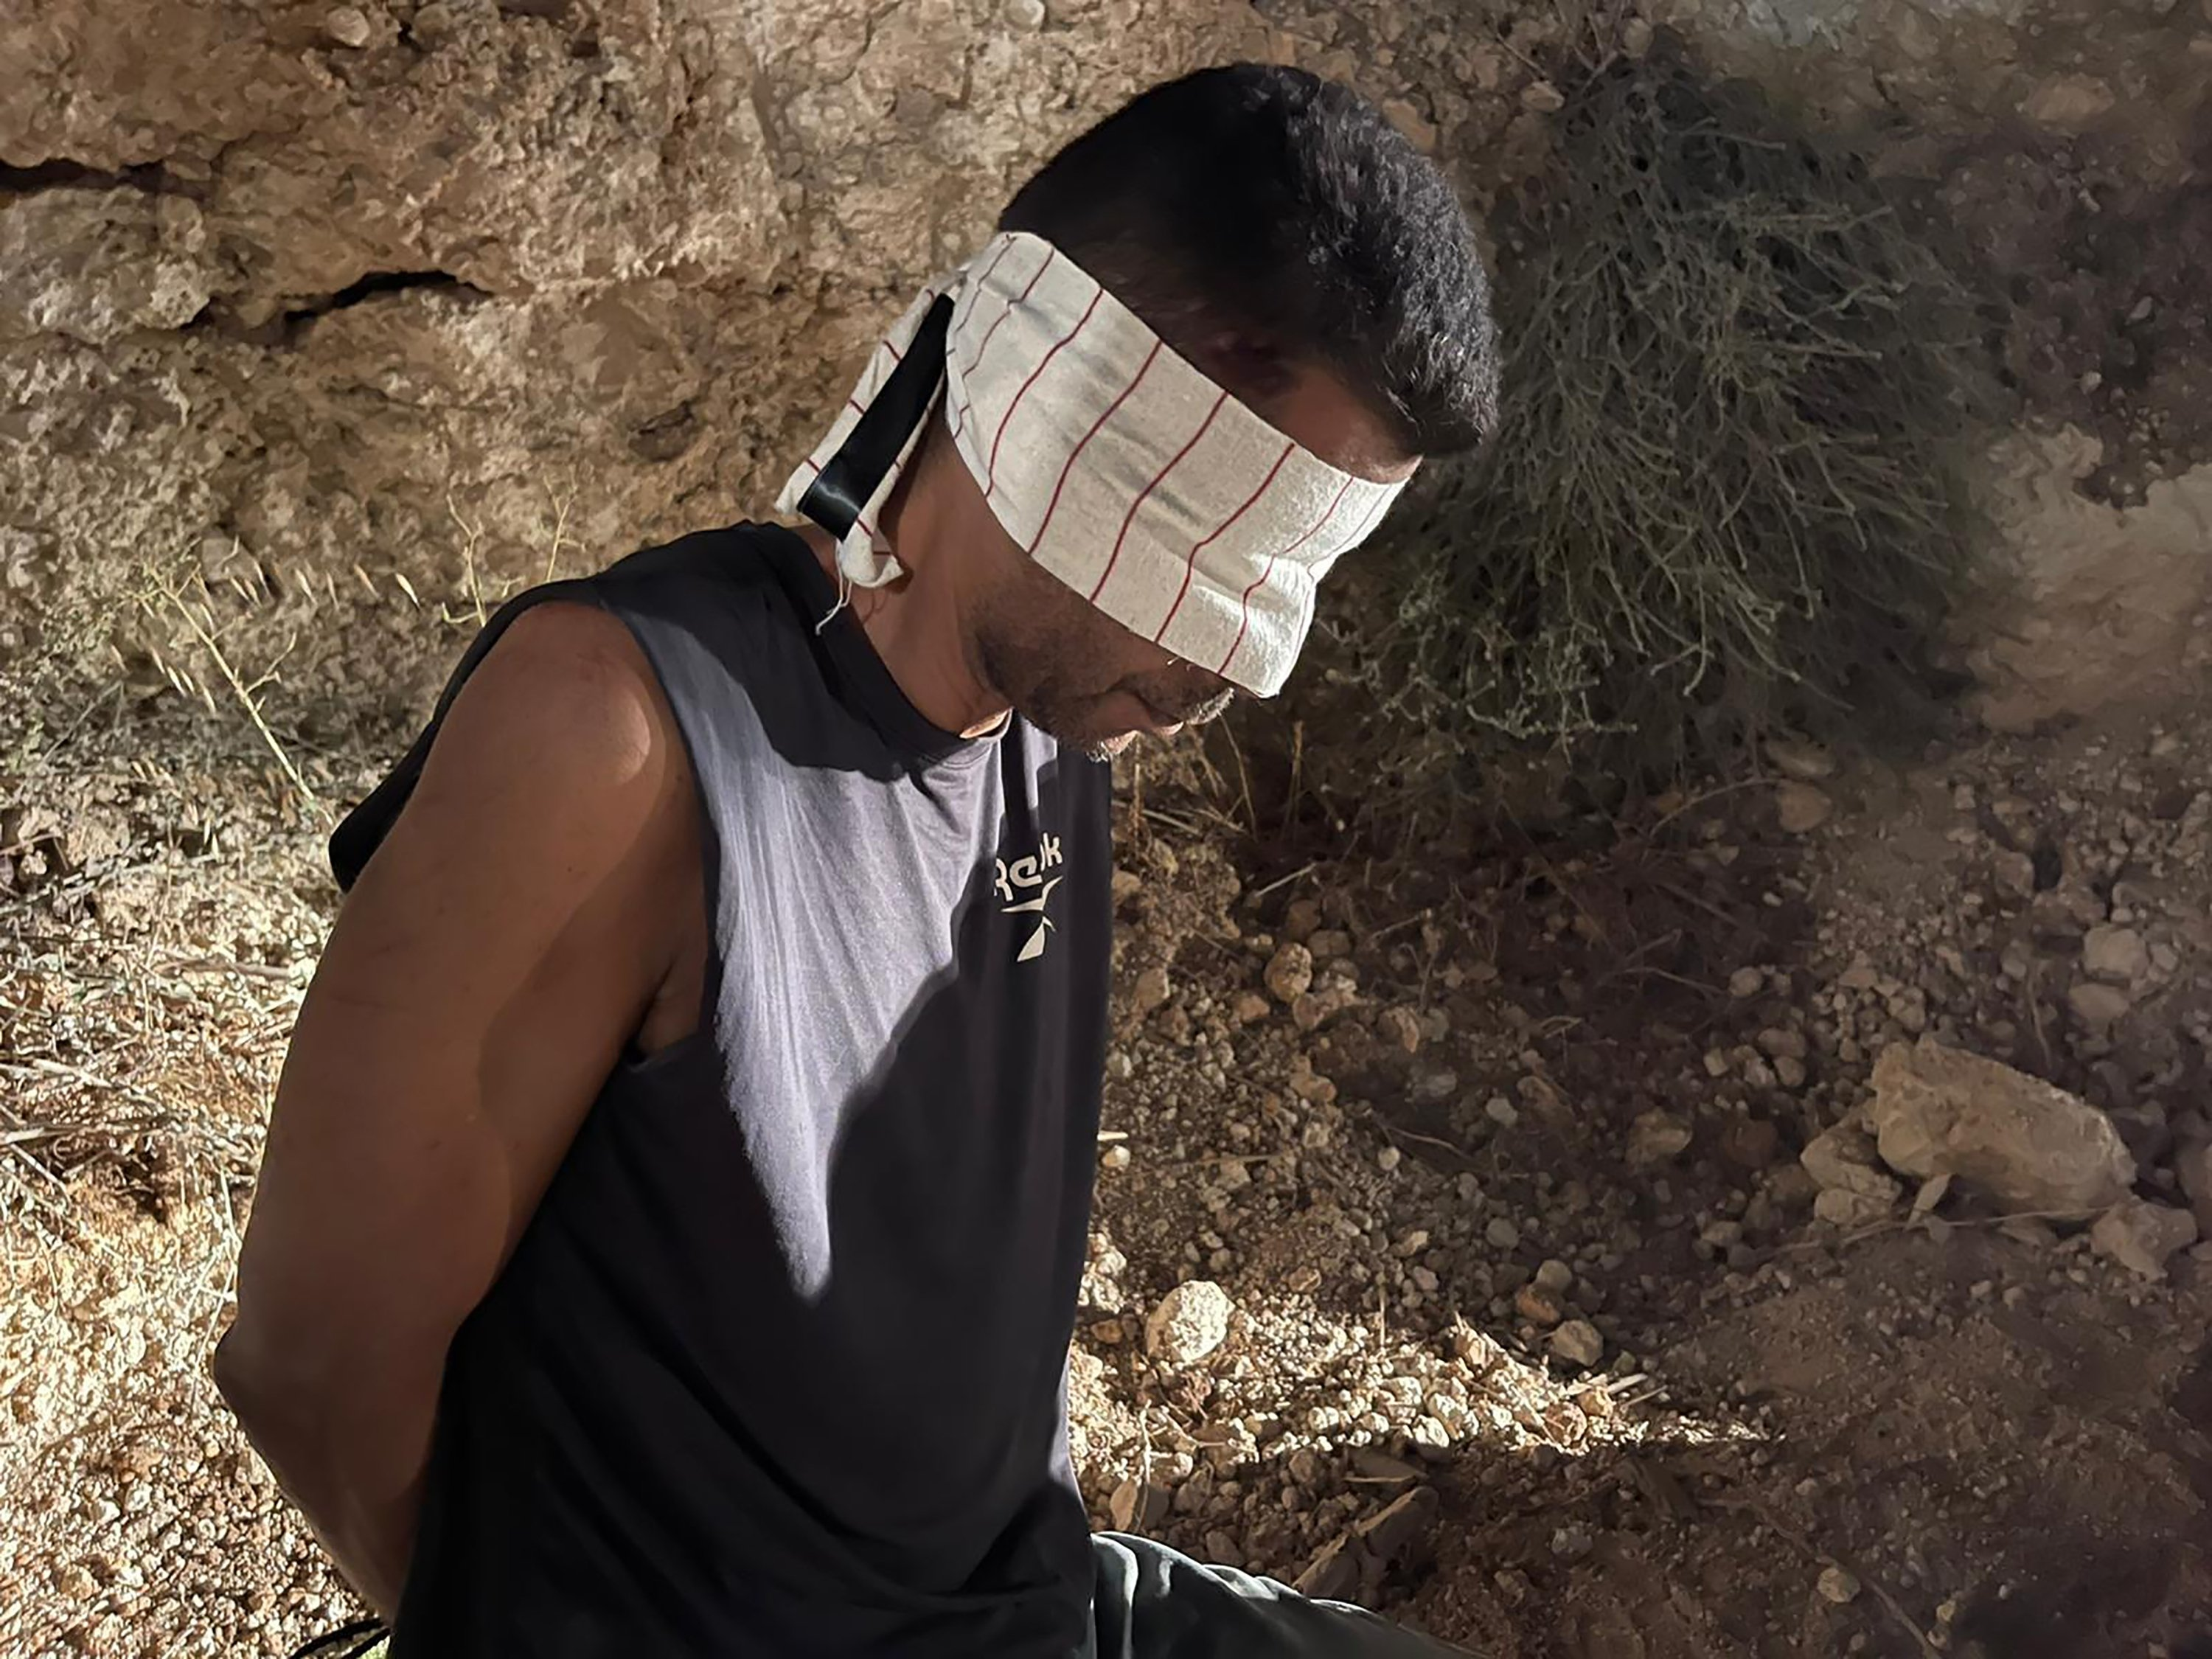 Zakaria Zubeidi, one of the six Palestinians who escaped from a high-security prison earlier this week, is blindfolded and handcuffed after being recaptured in the town of Umm al-Ghanam, northern Israel, Sept. 11, 2021. (AP Photo)